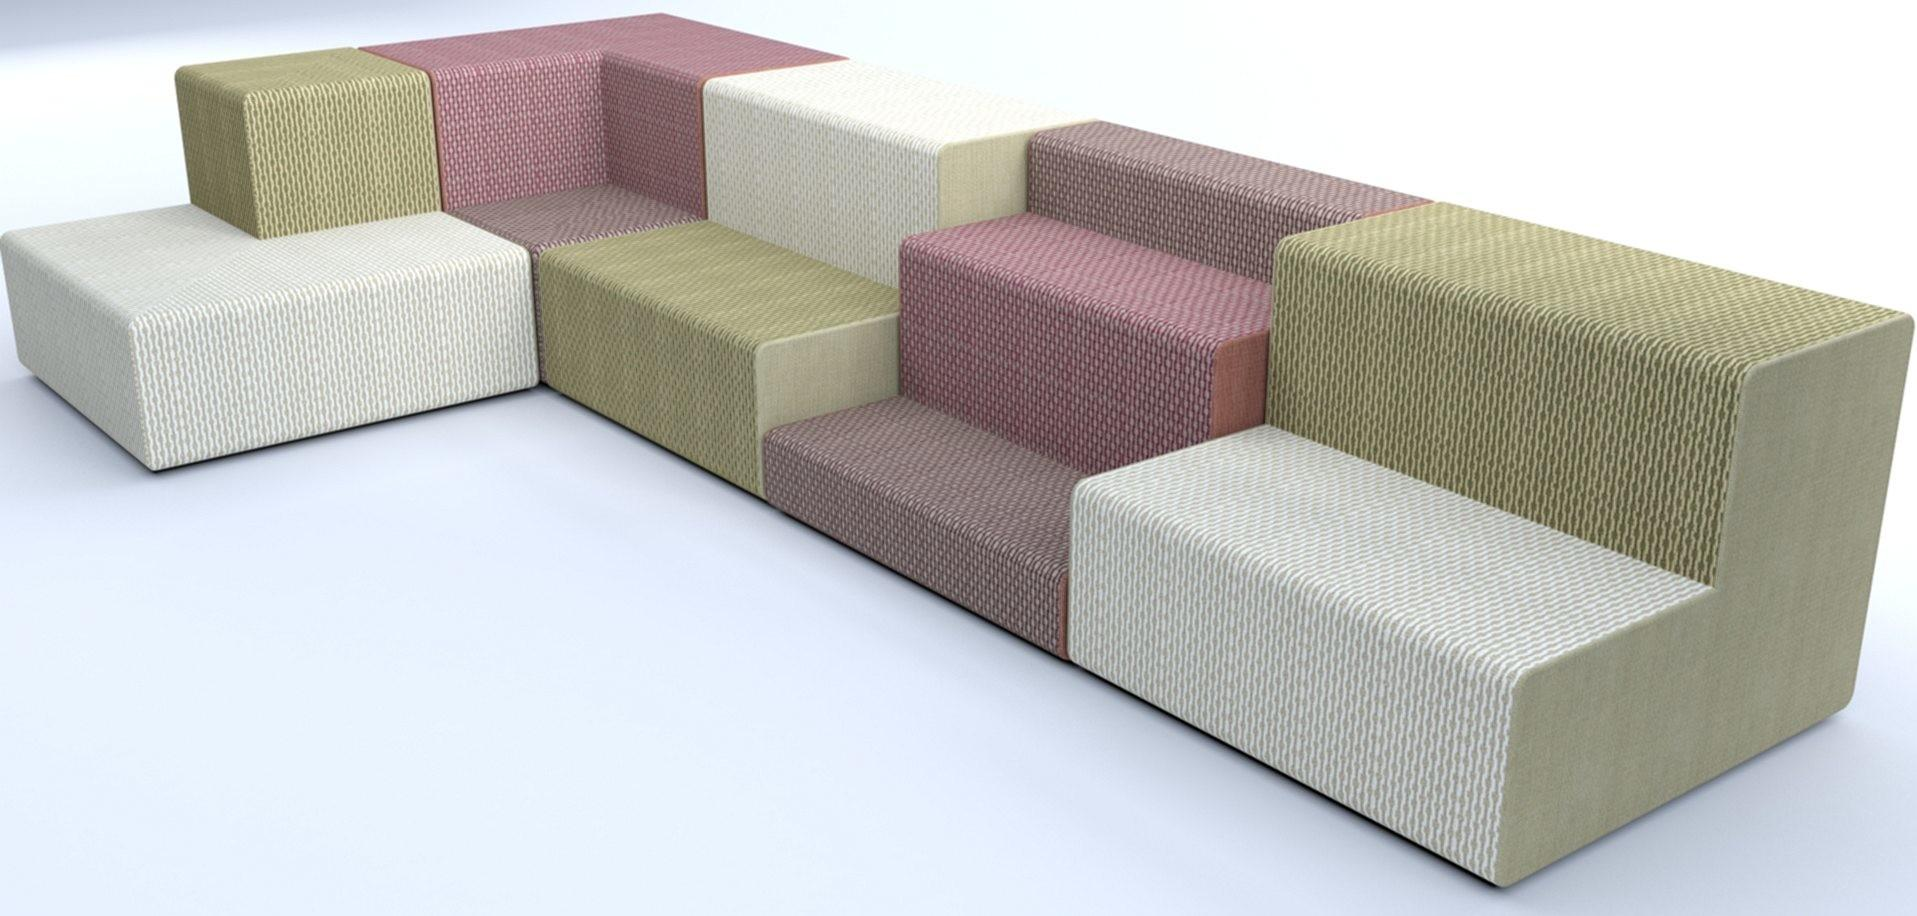 Blockley Modular Sofa Range